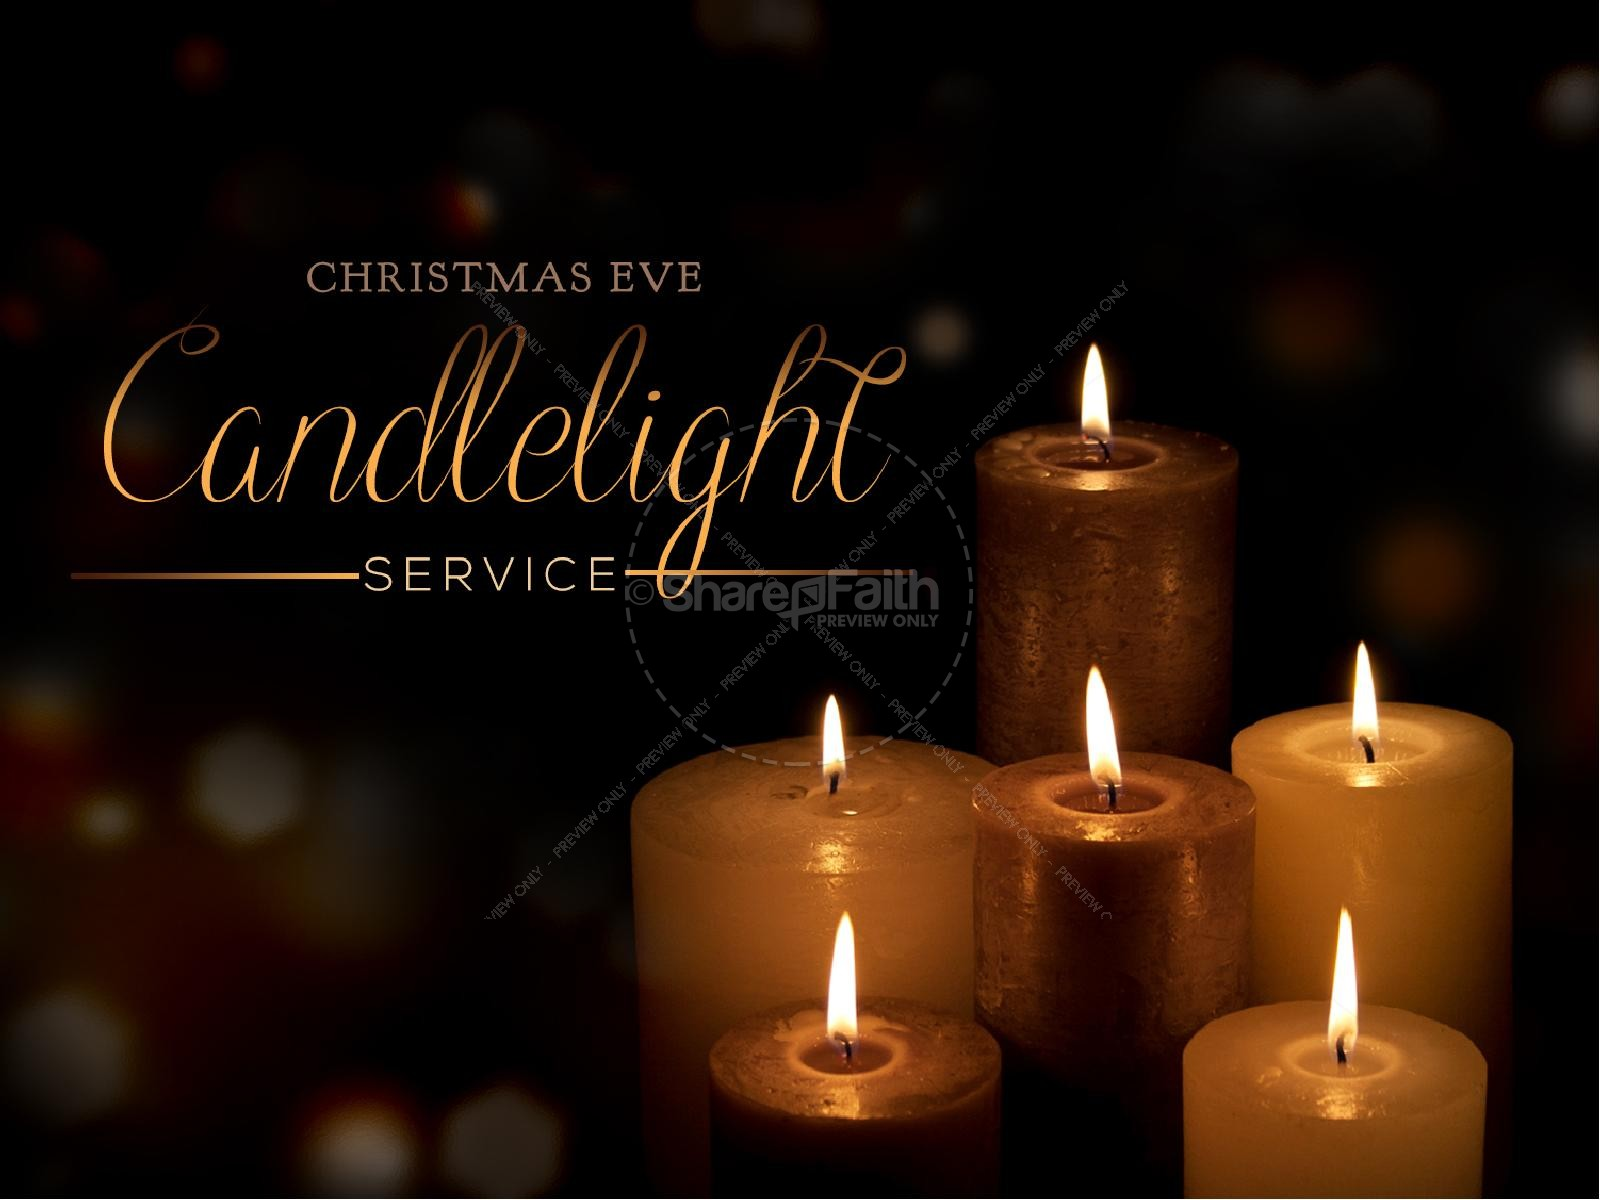 Candlelight Service Religious PowerPoint | Christmas PowerPoints